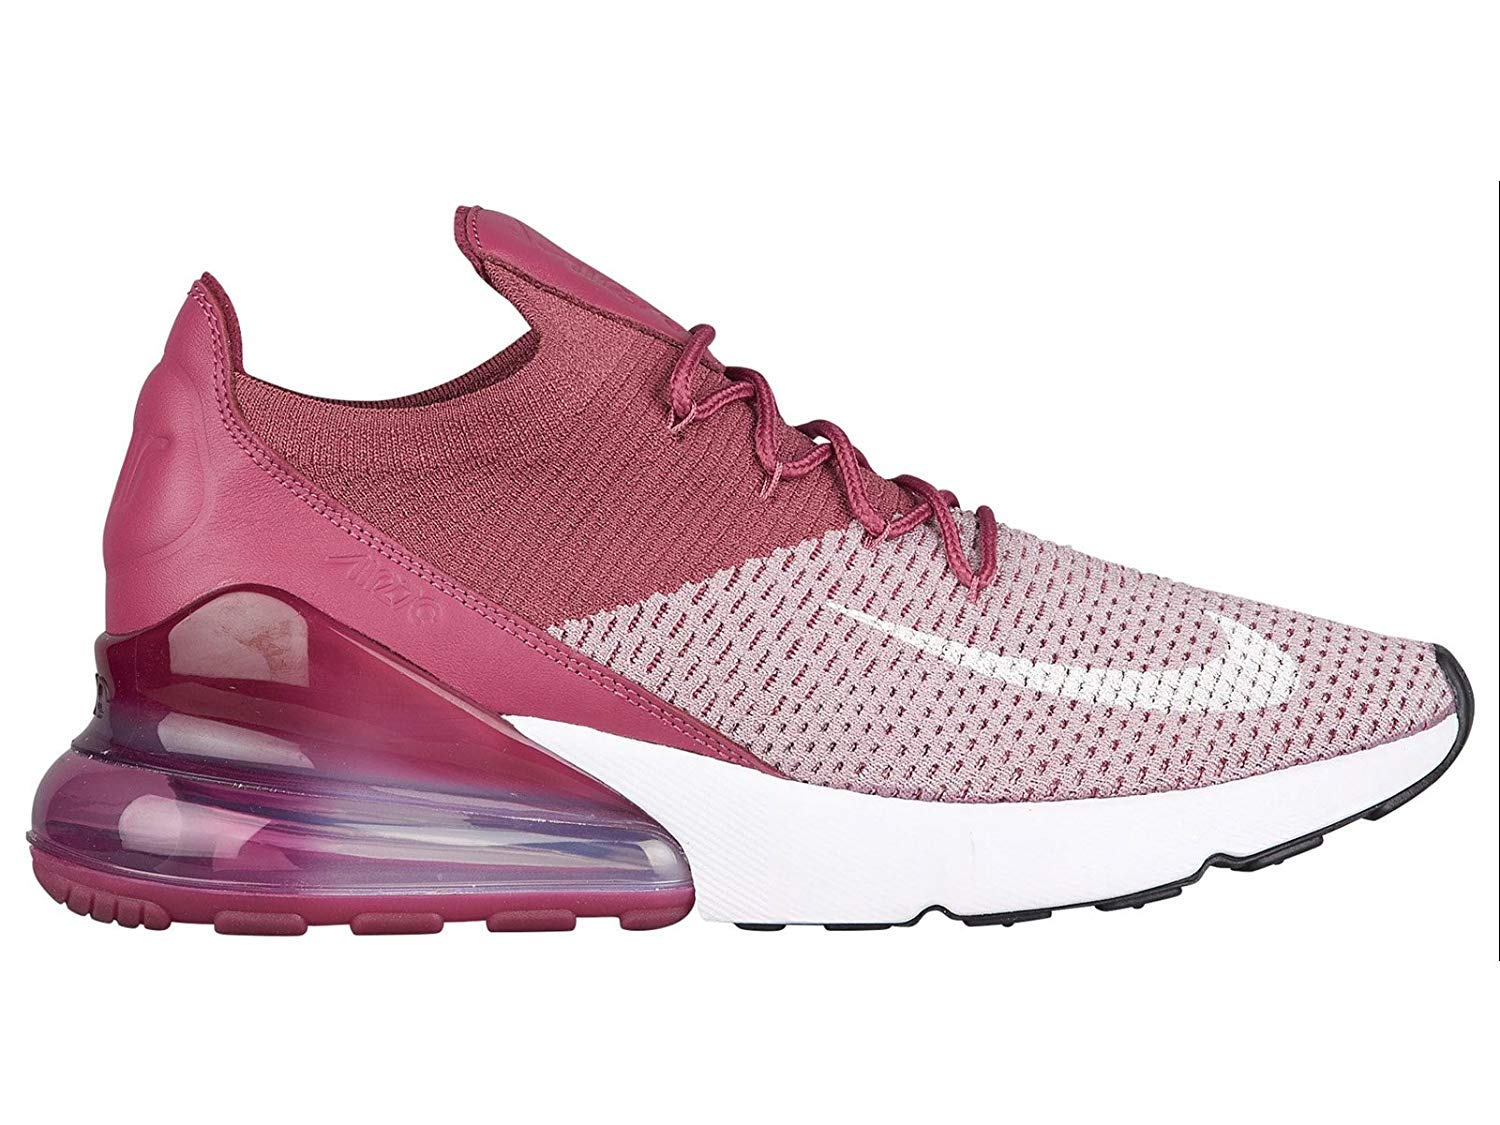 best authentic eb9bb 71cfe NIKE Mens Air Max 270 Flyknit Plum Fog White Vintage Wine Total Crimson  Nylon Basketball Shoes 12 (D) M US